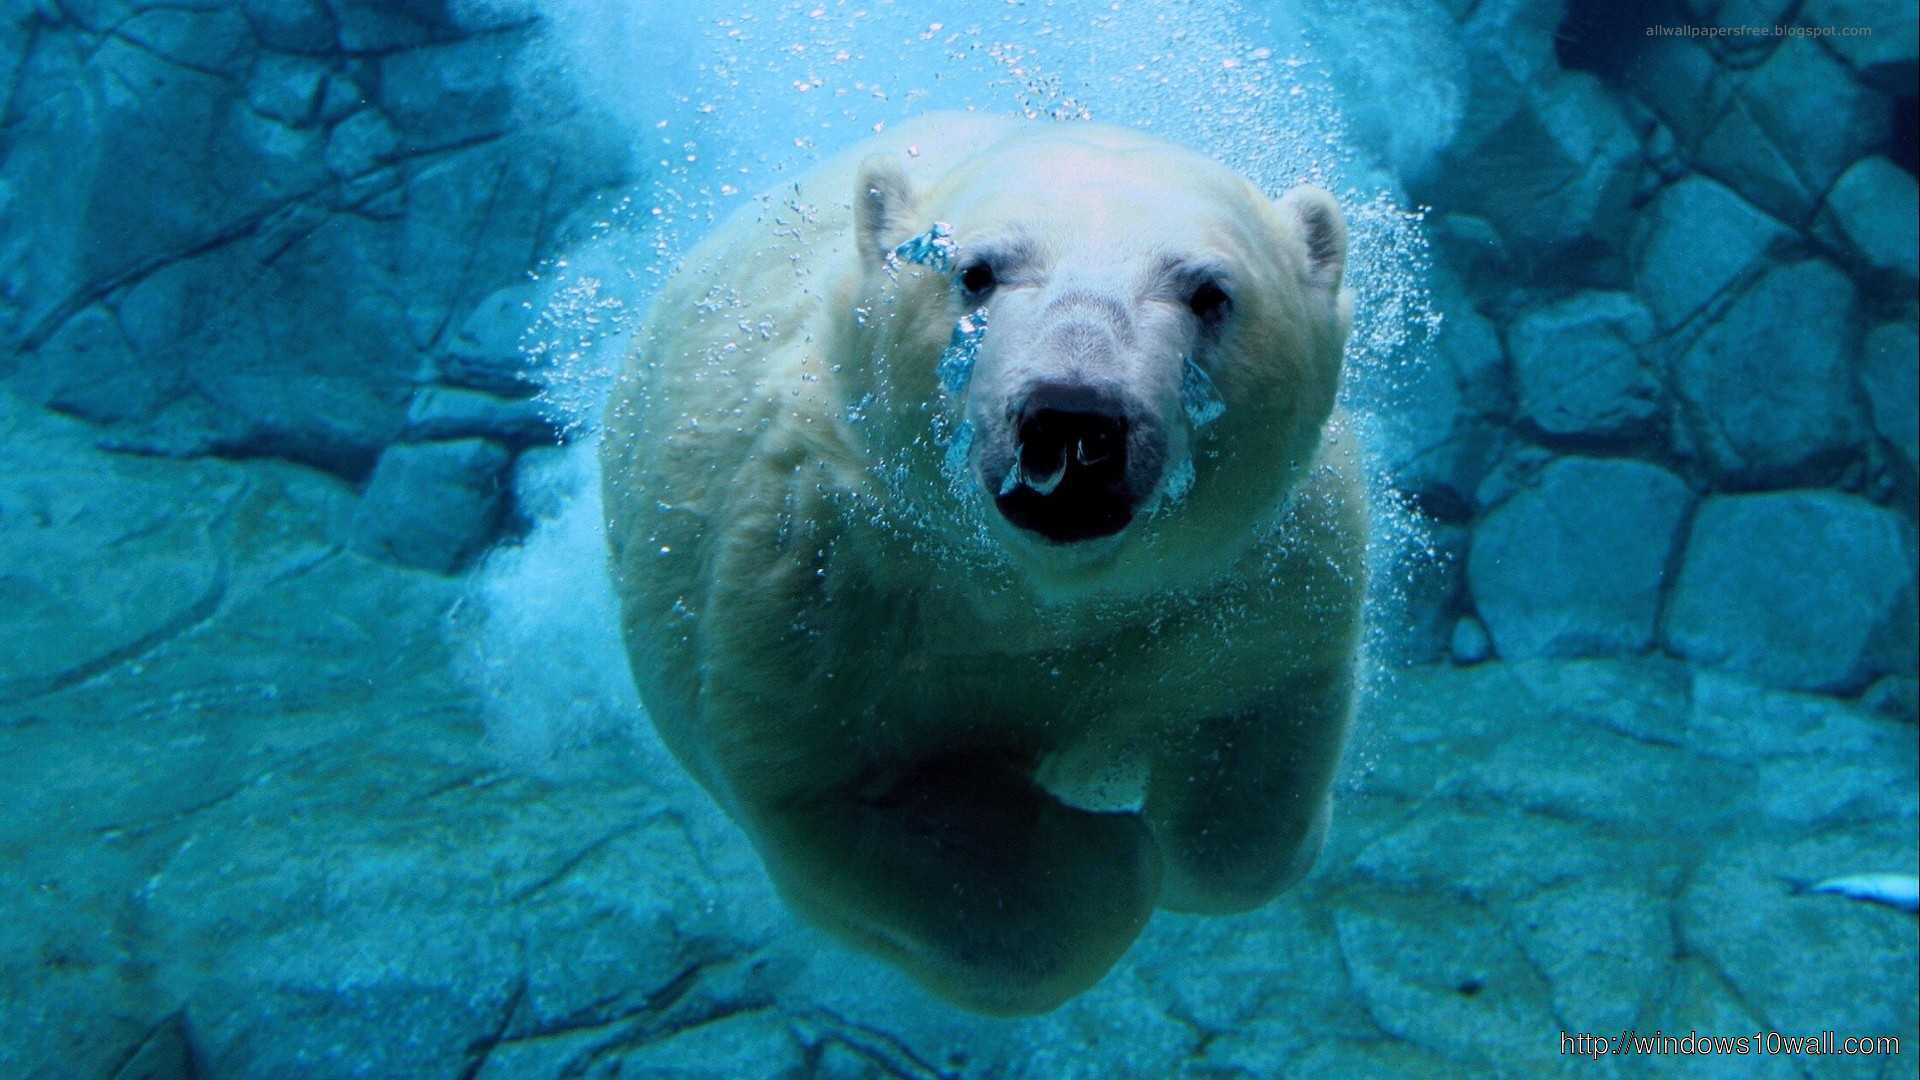 white bear in water background wallpaper hd 1080p